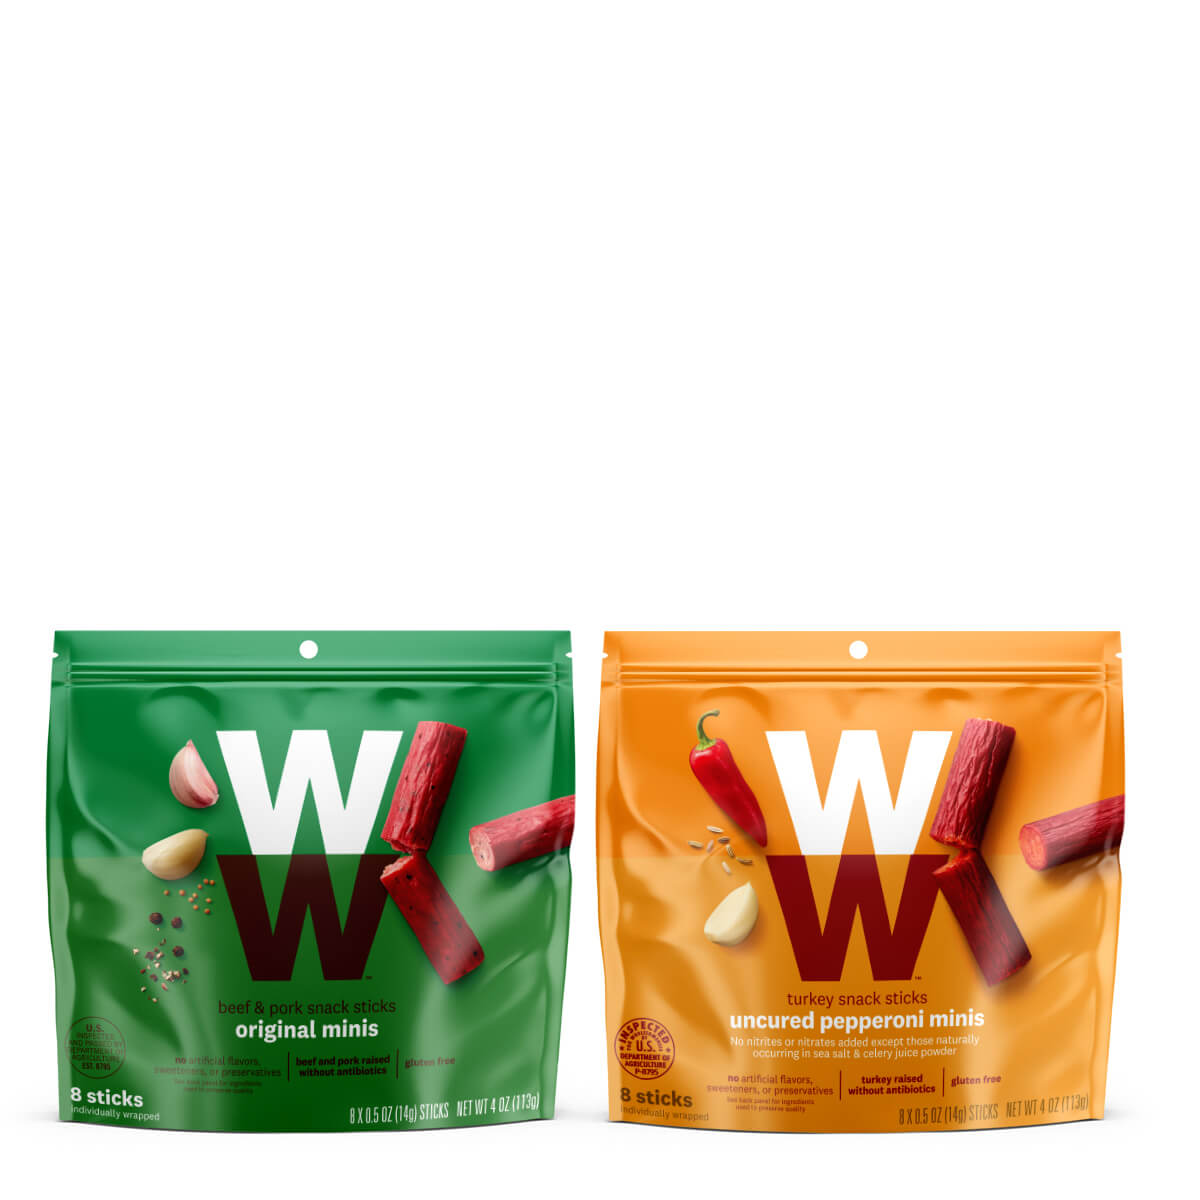 WW Meat Snack Sticks Duo, includes 2 packs of WW Turkey Pepperoni Snack Sticks and 2 packs  Original Beef & Pork Snack Sticks, 1 point per serving (2 sticks), 4 servings per pack.